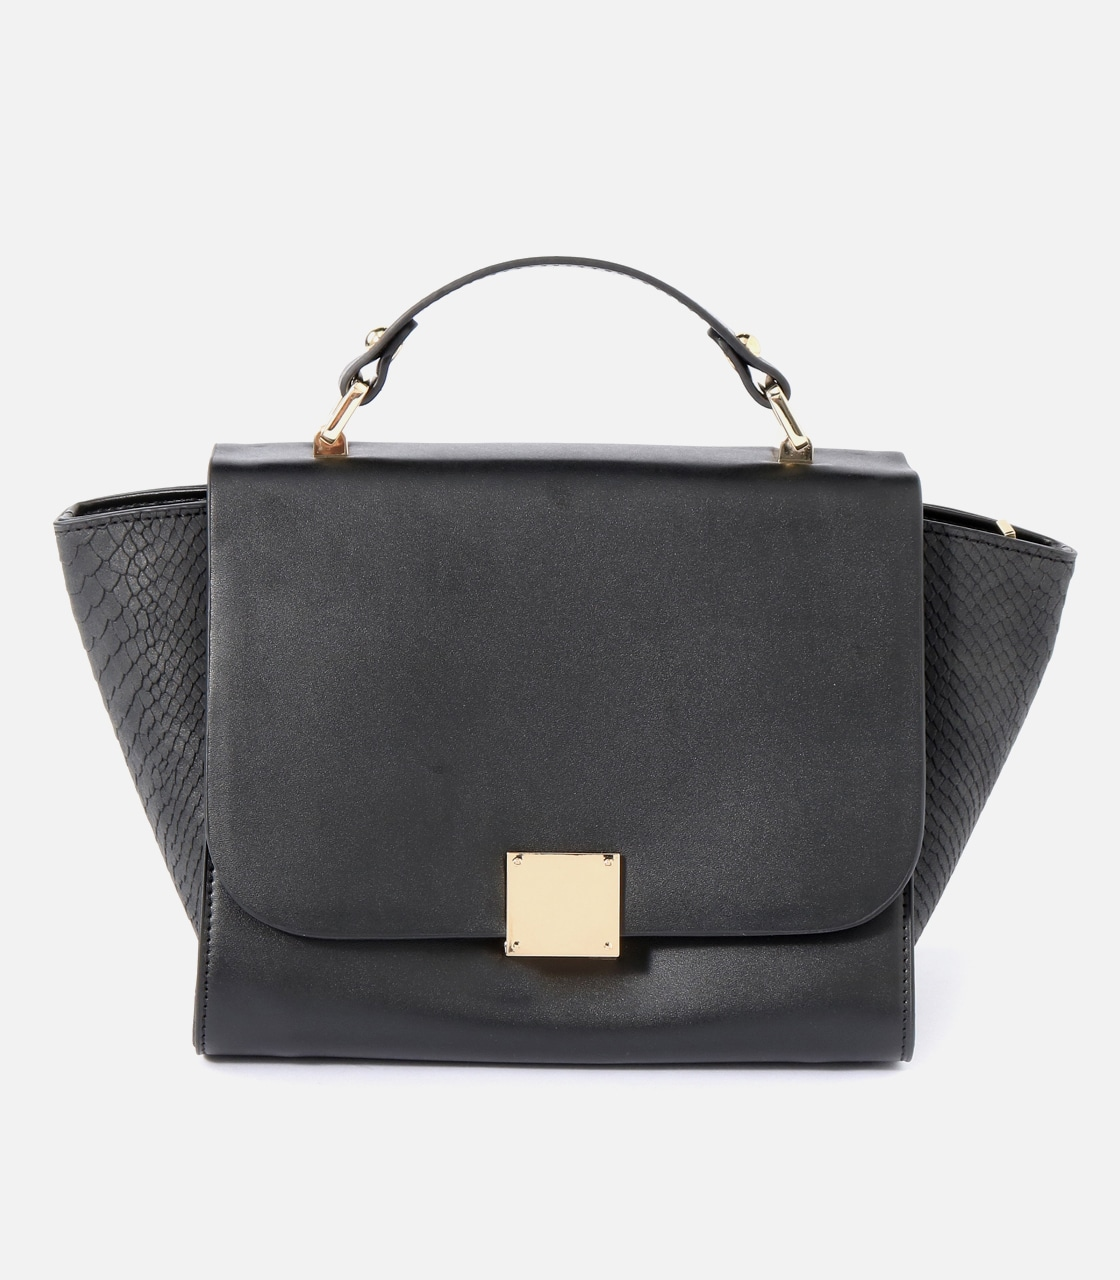 【AZUL BY MOUSSY】SQUARE METAL BAG 詳細画像 BLK 1